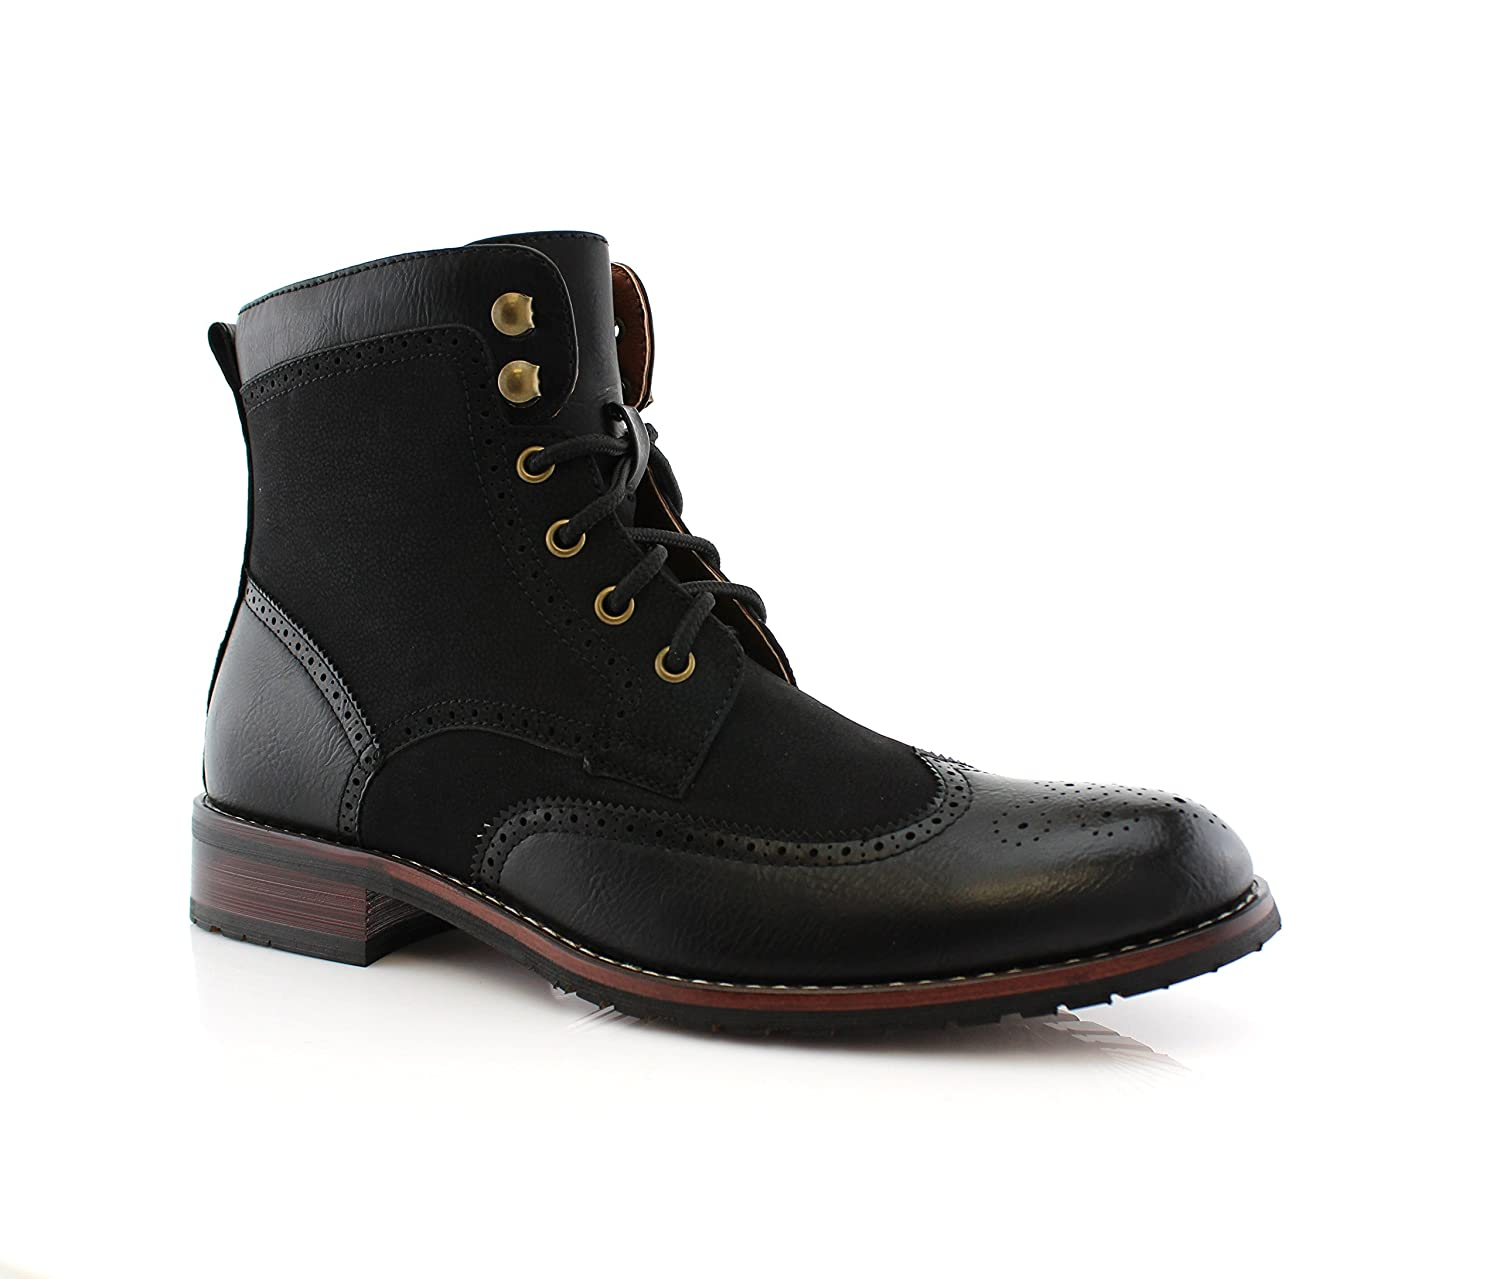 Edwardian Men's Shoes & Boots | 1900, 1910s Polar Fox JONAH MPX808567 $37.99 AT vintagedancer.com